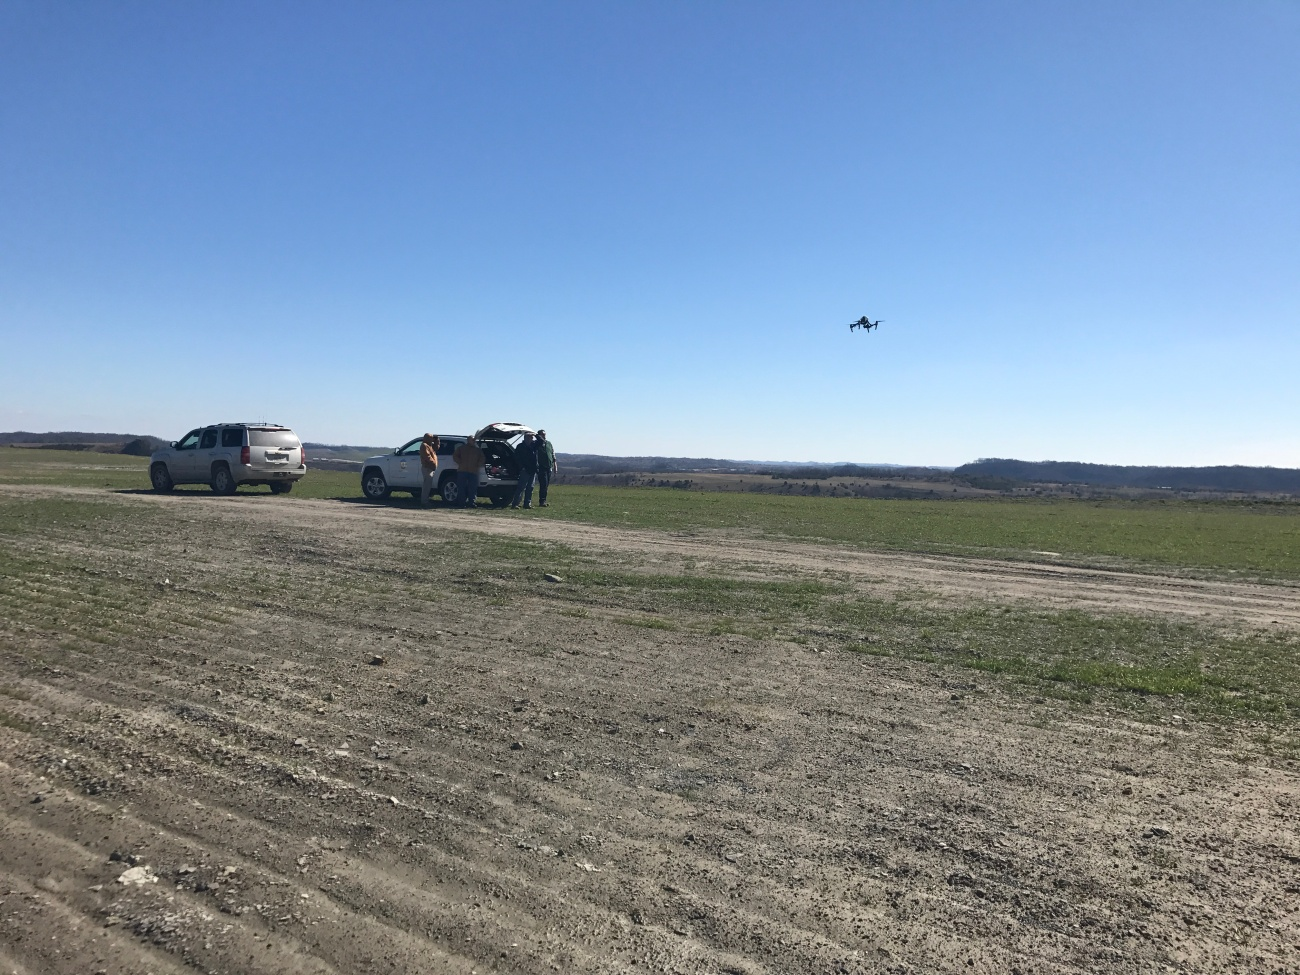 The DMRE drone is flown on a site in Eastern Ky.